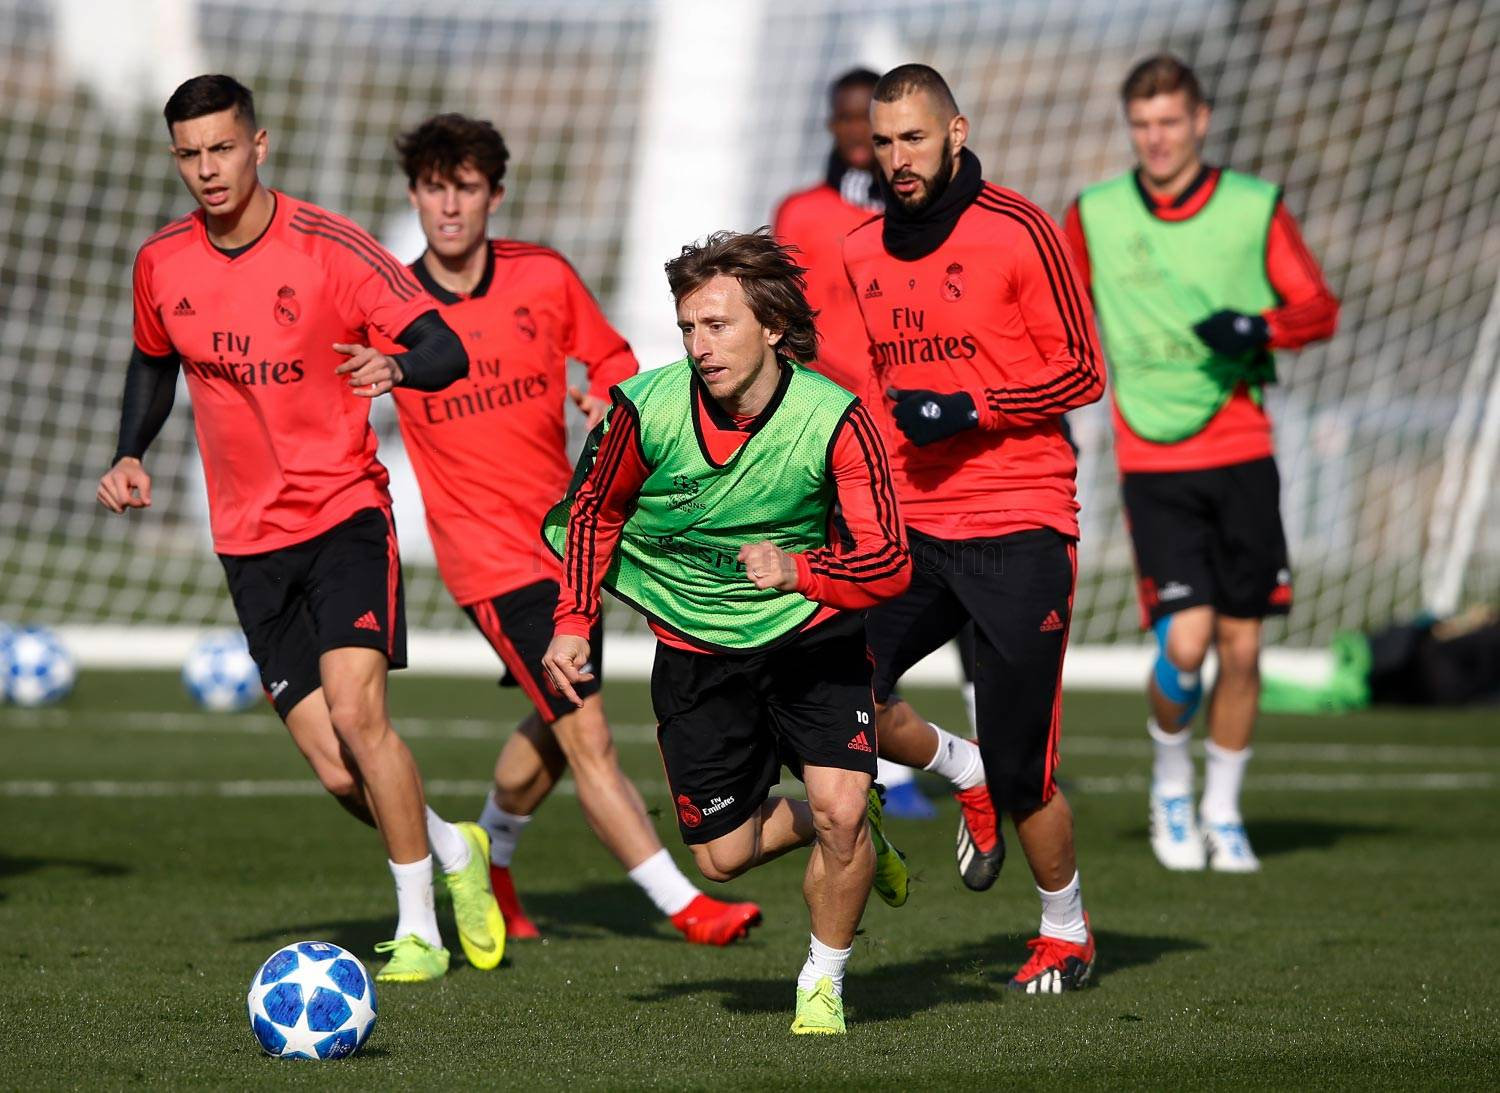 Real Madrid - Entrenamiento del Real Madrid - 11-12-2018